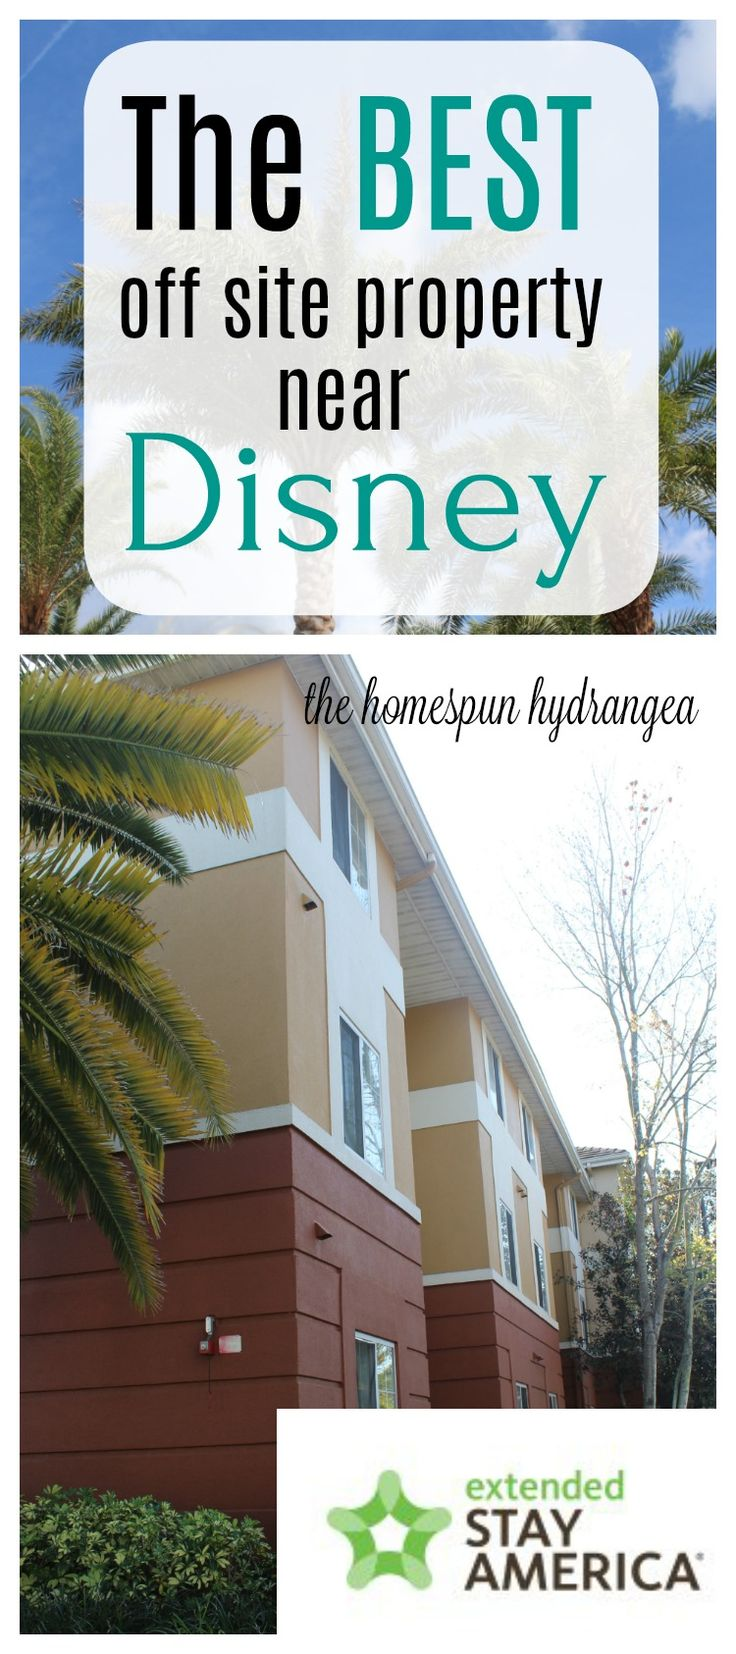 If you are looking for hotels in Orlando, see why Extended Stay Lake Buena Vista is the BEST Off Site Hotel Near Walt Disney World! #MyEsa #Orlando #Travel #disneyworld